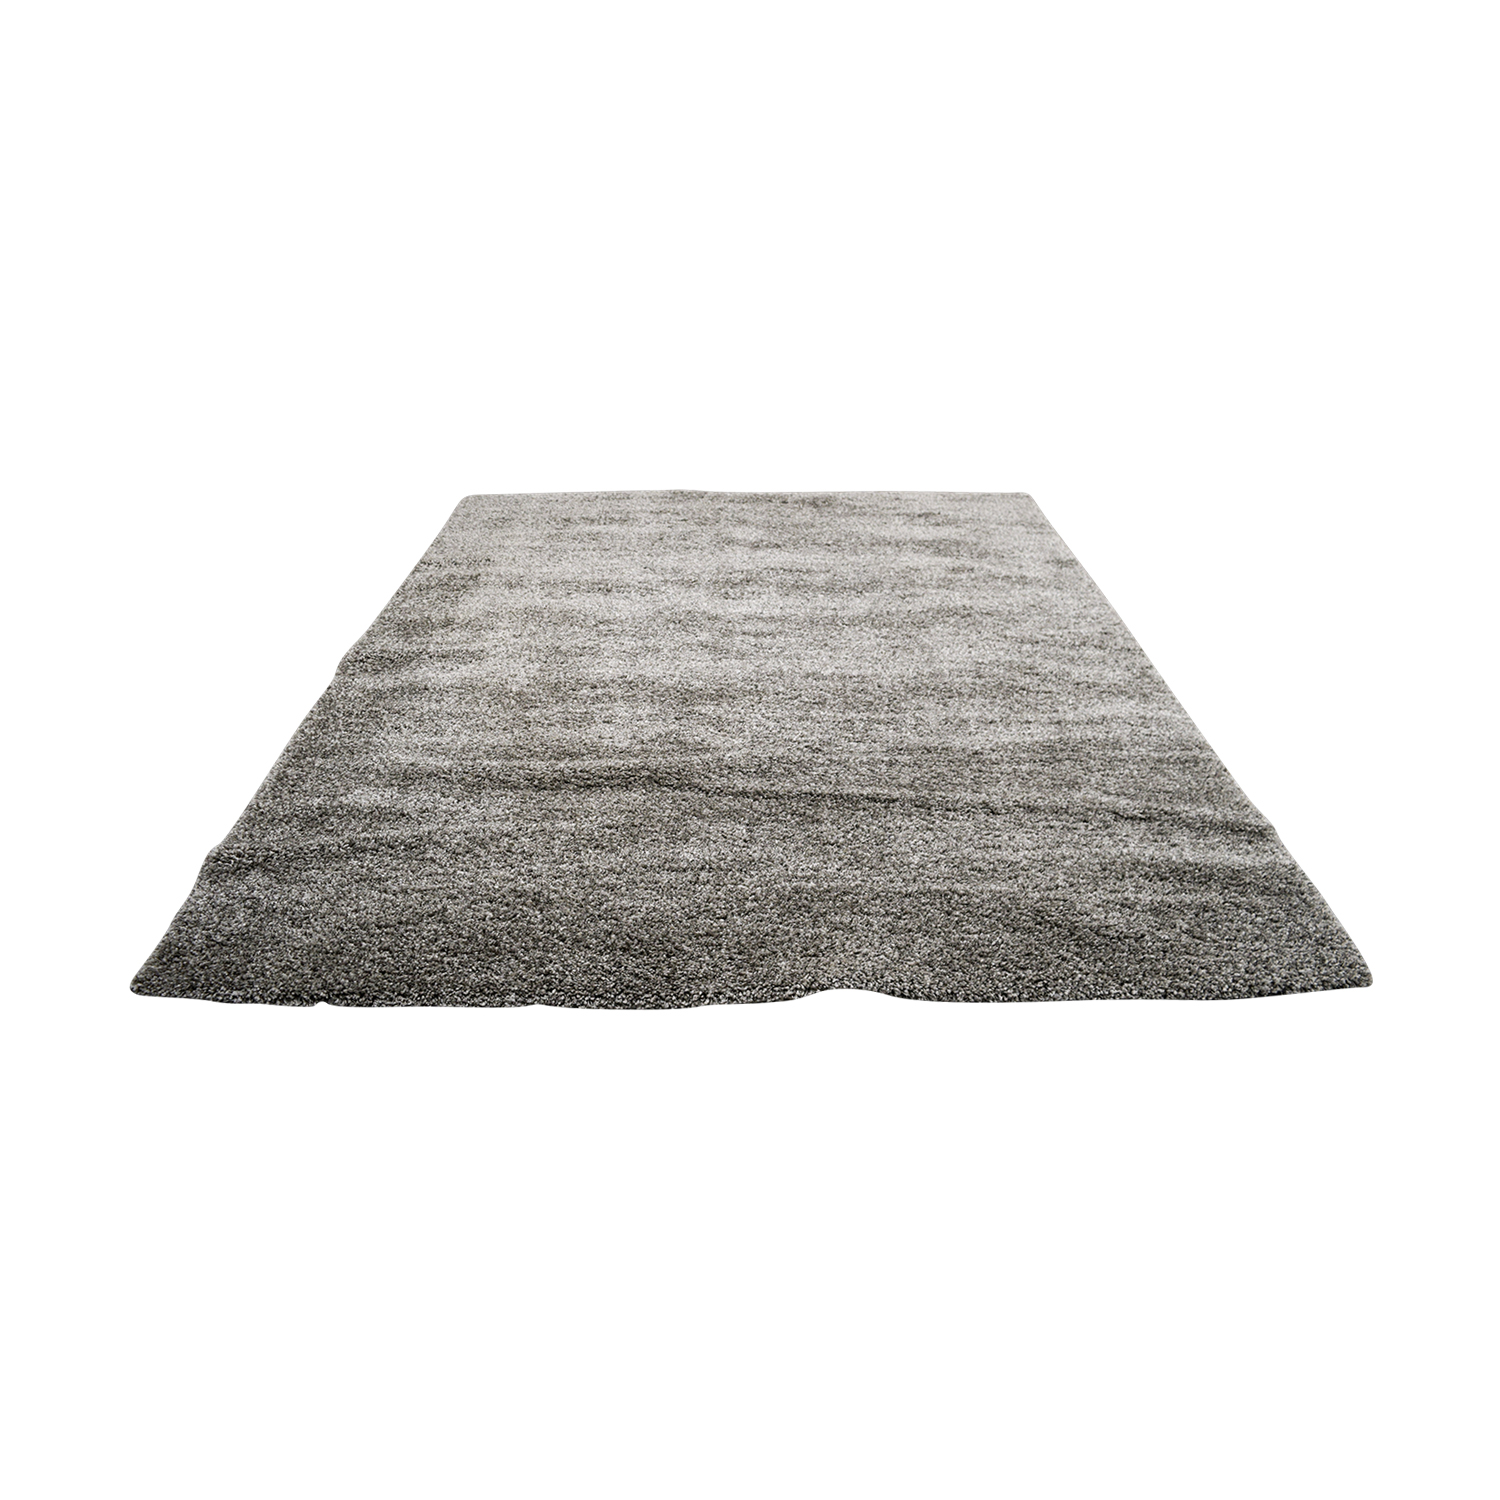 Safavieh Safavieh Braided Light Gray Rectangle Shag Rug Rugs